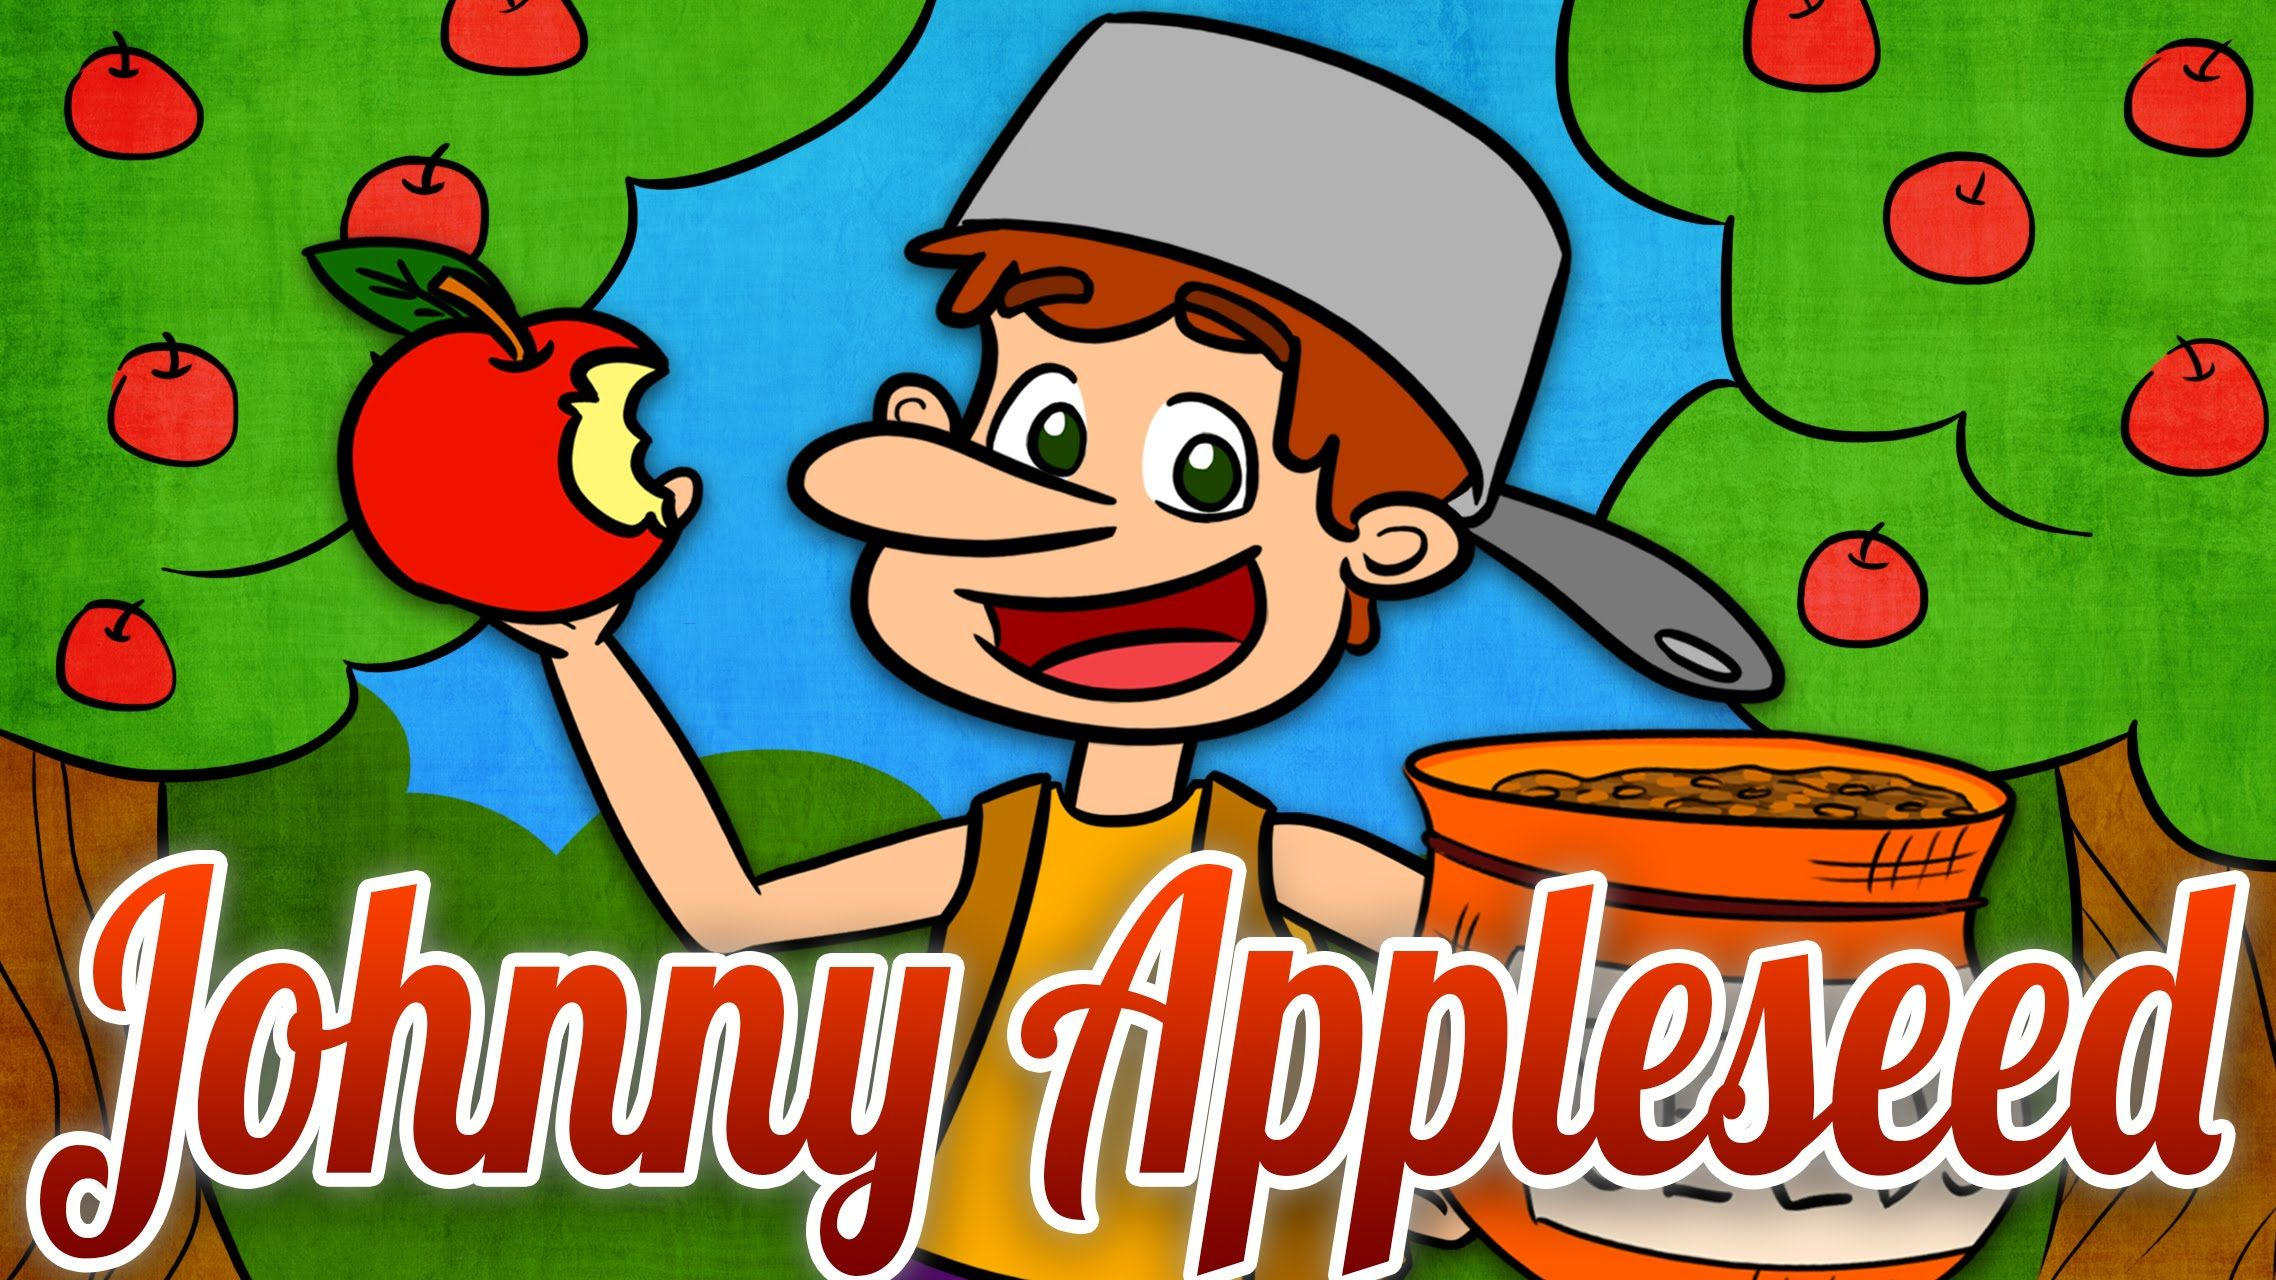 4 Minute Cartoon Explaining What Johnny Appleseed S